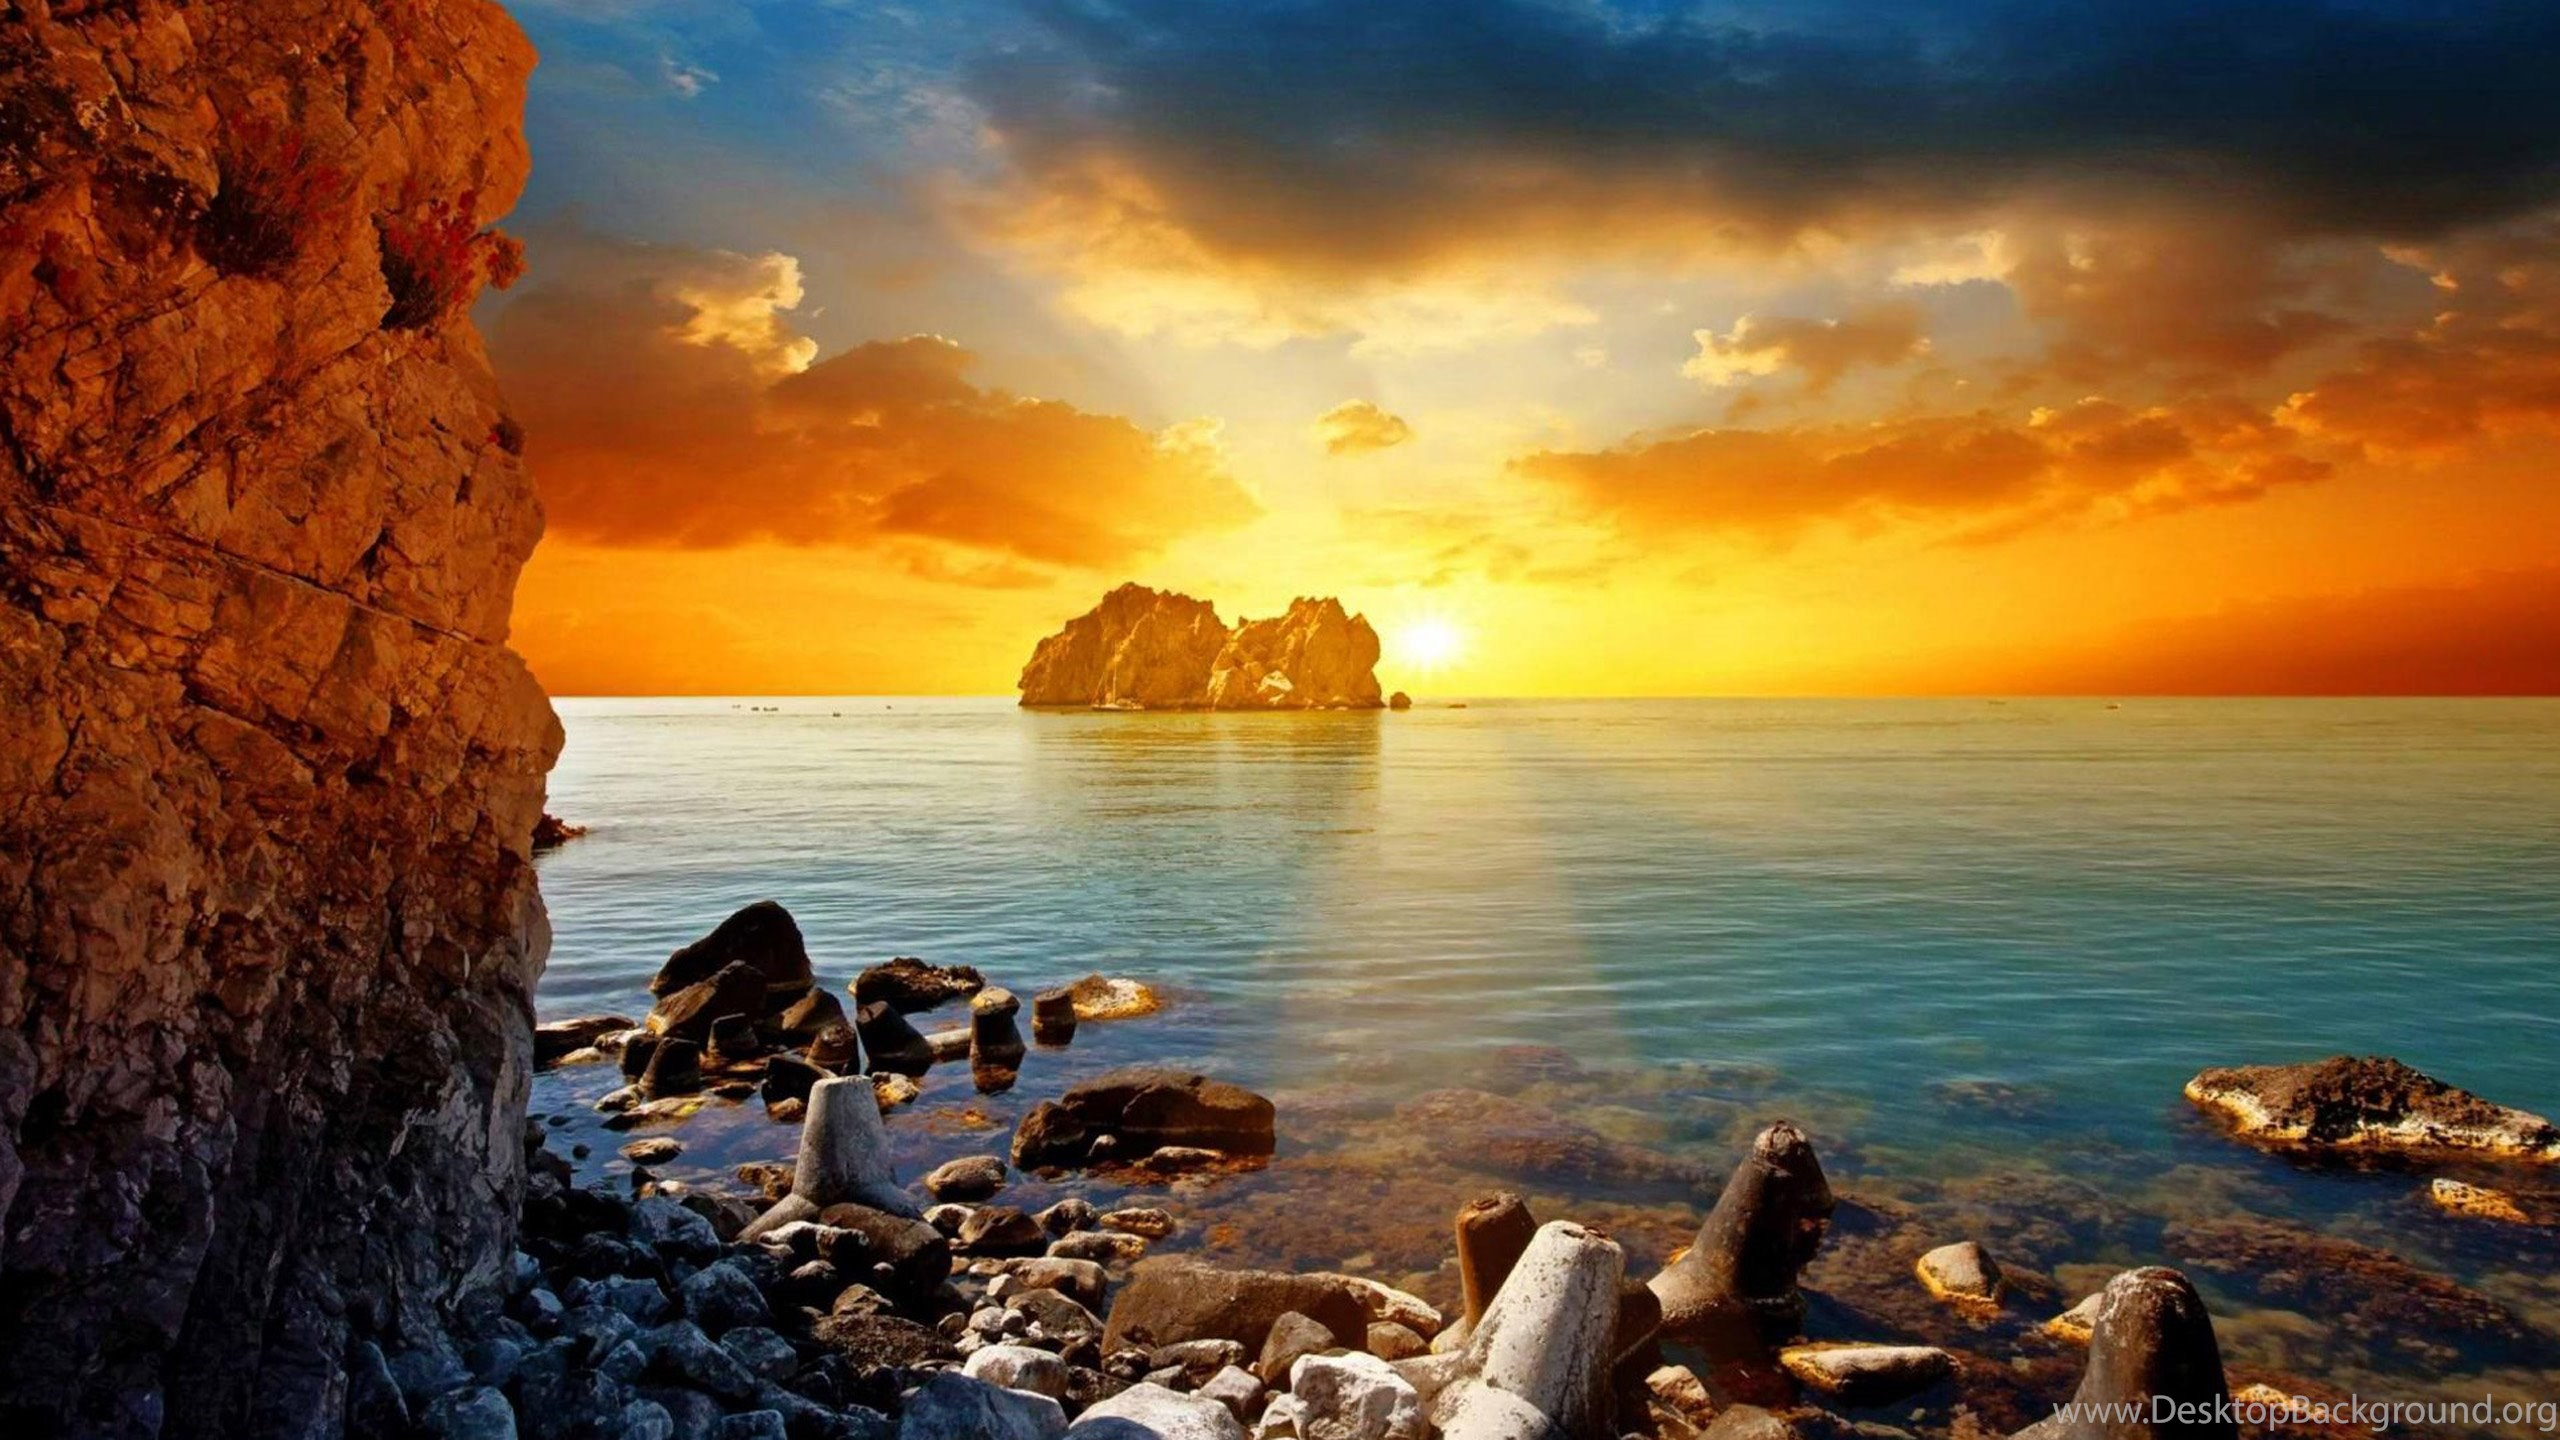 Tropical Beach Sunset Wallpapers 09 Hd Desktop Wallpapers Desktop Background